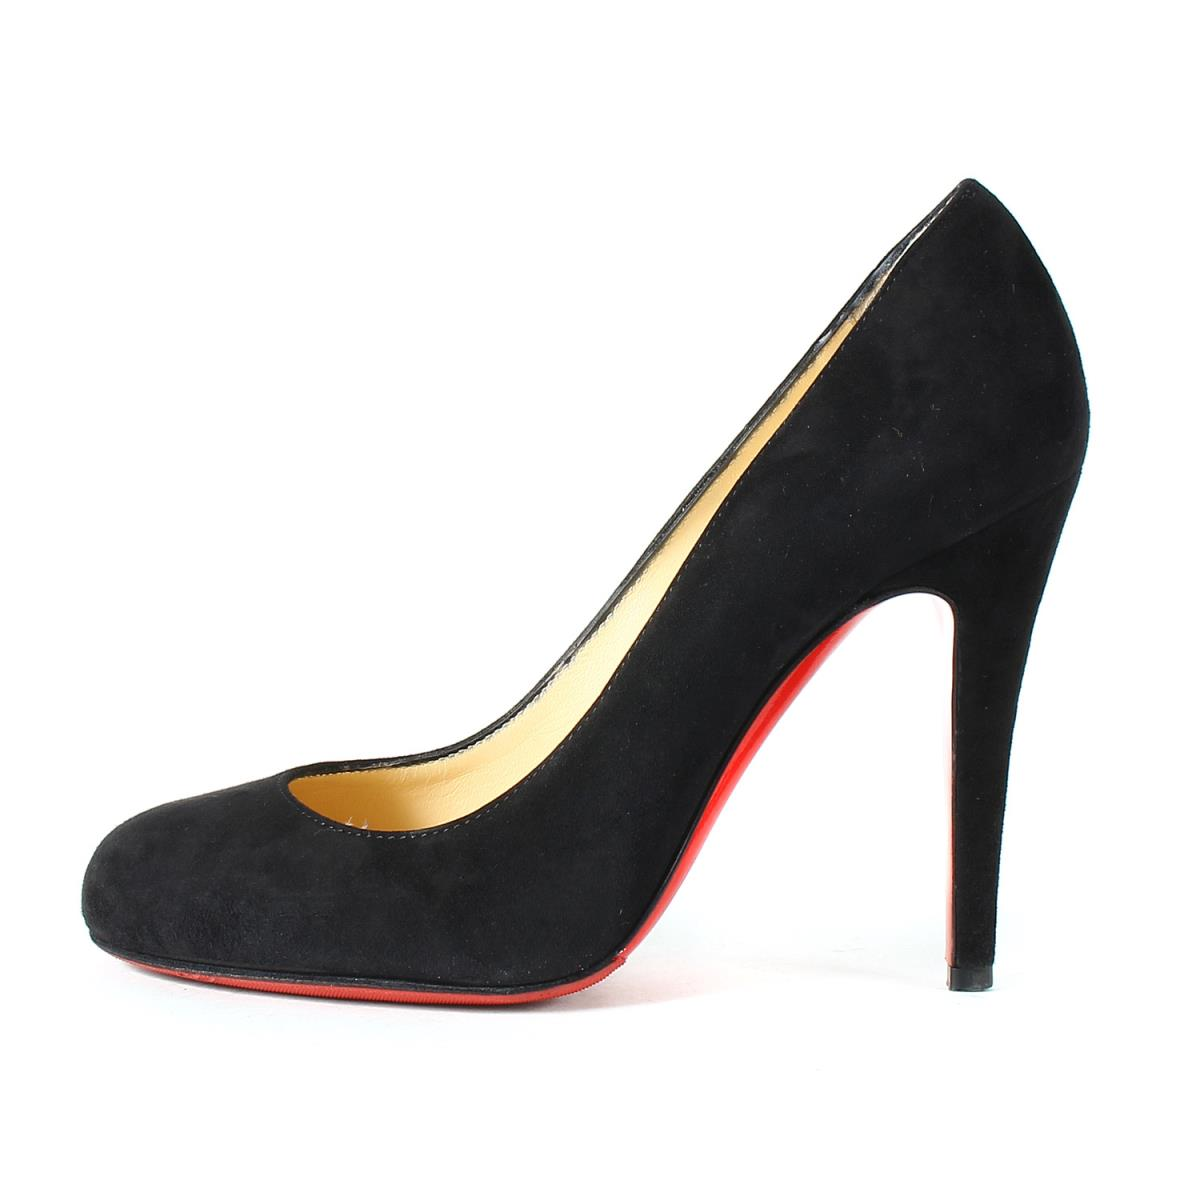 sports shoes c059f 2fb07 Christian Louboutin (Christian ルブタン) suede cloth heel pumps RON RON 100  SUEDE black 36 (23cm)